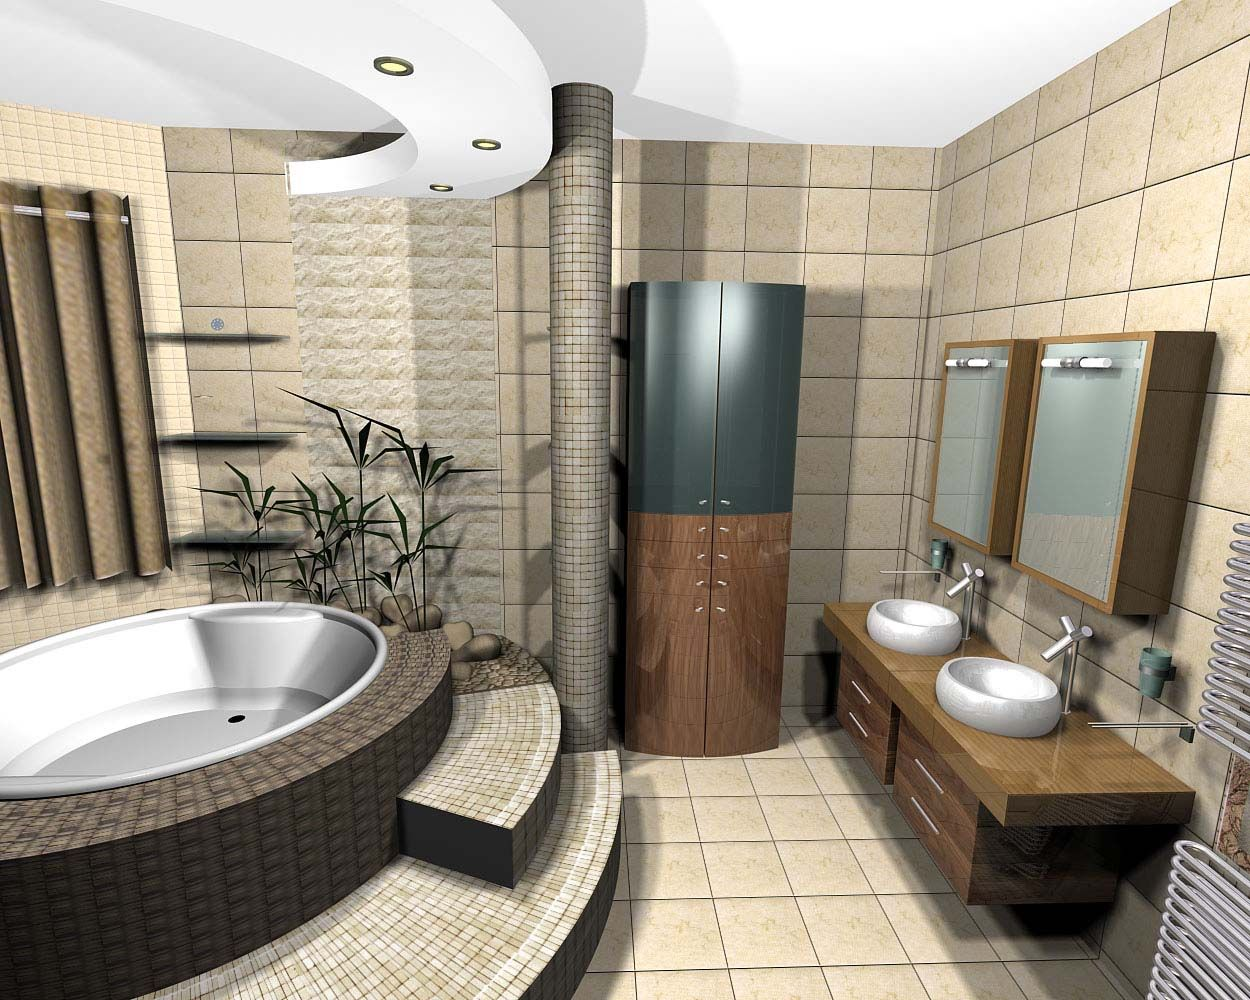 ideas for bathrooms decorating%0A Bathroom   Cool Bathroom Designs For Small Bathroom Remodeling Bathroom u   a Bathroom  Ideas u   a Small Bathroom Decorating Ideas also Bathrooms